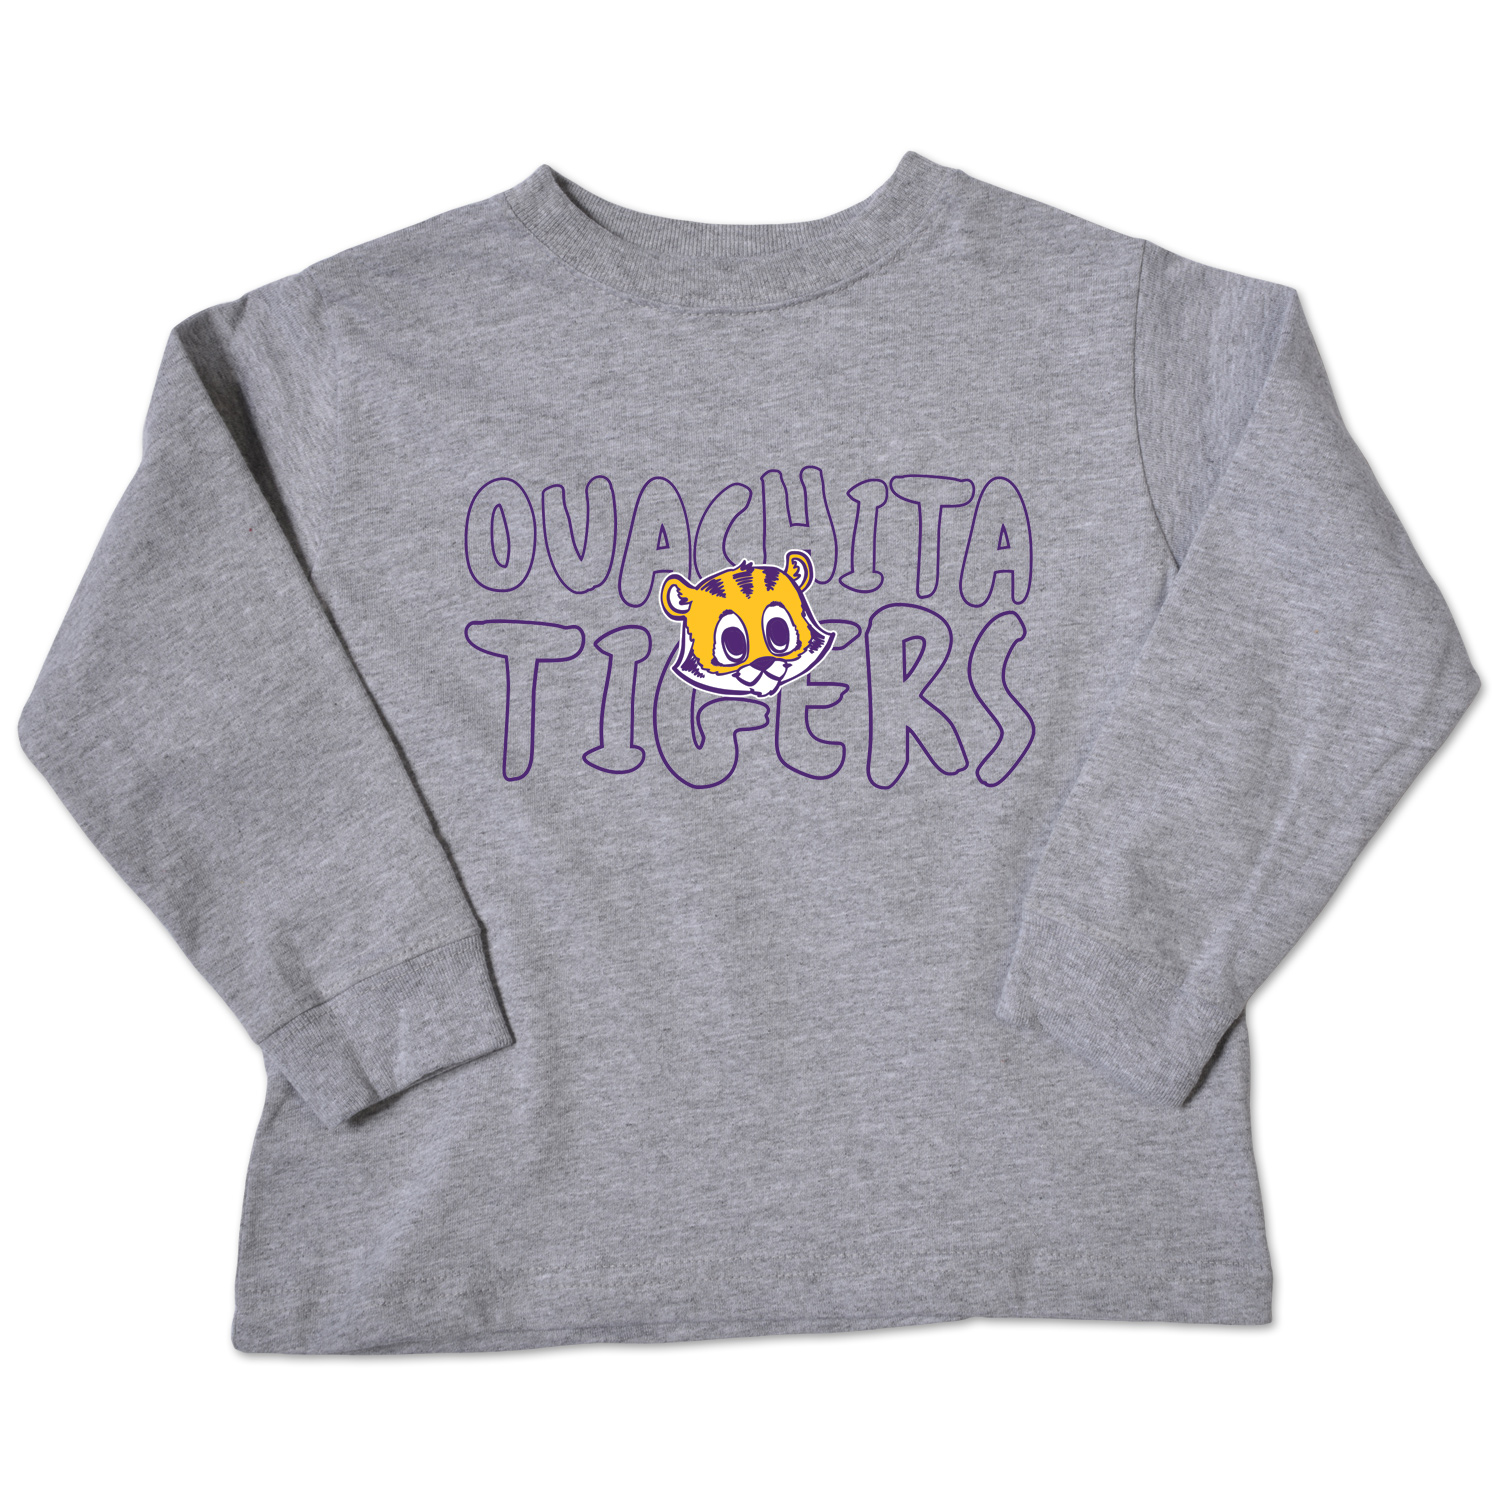 OUACHITA TIGERS LS TODDLER TEE